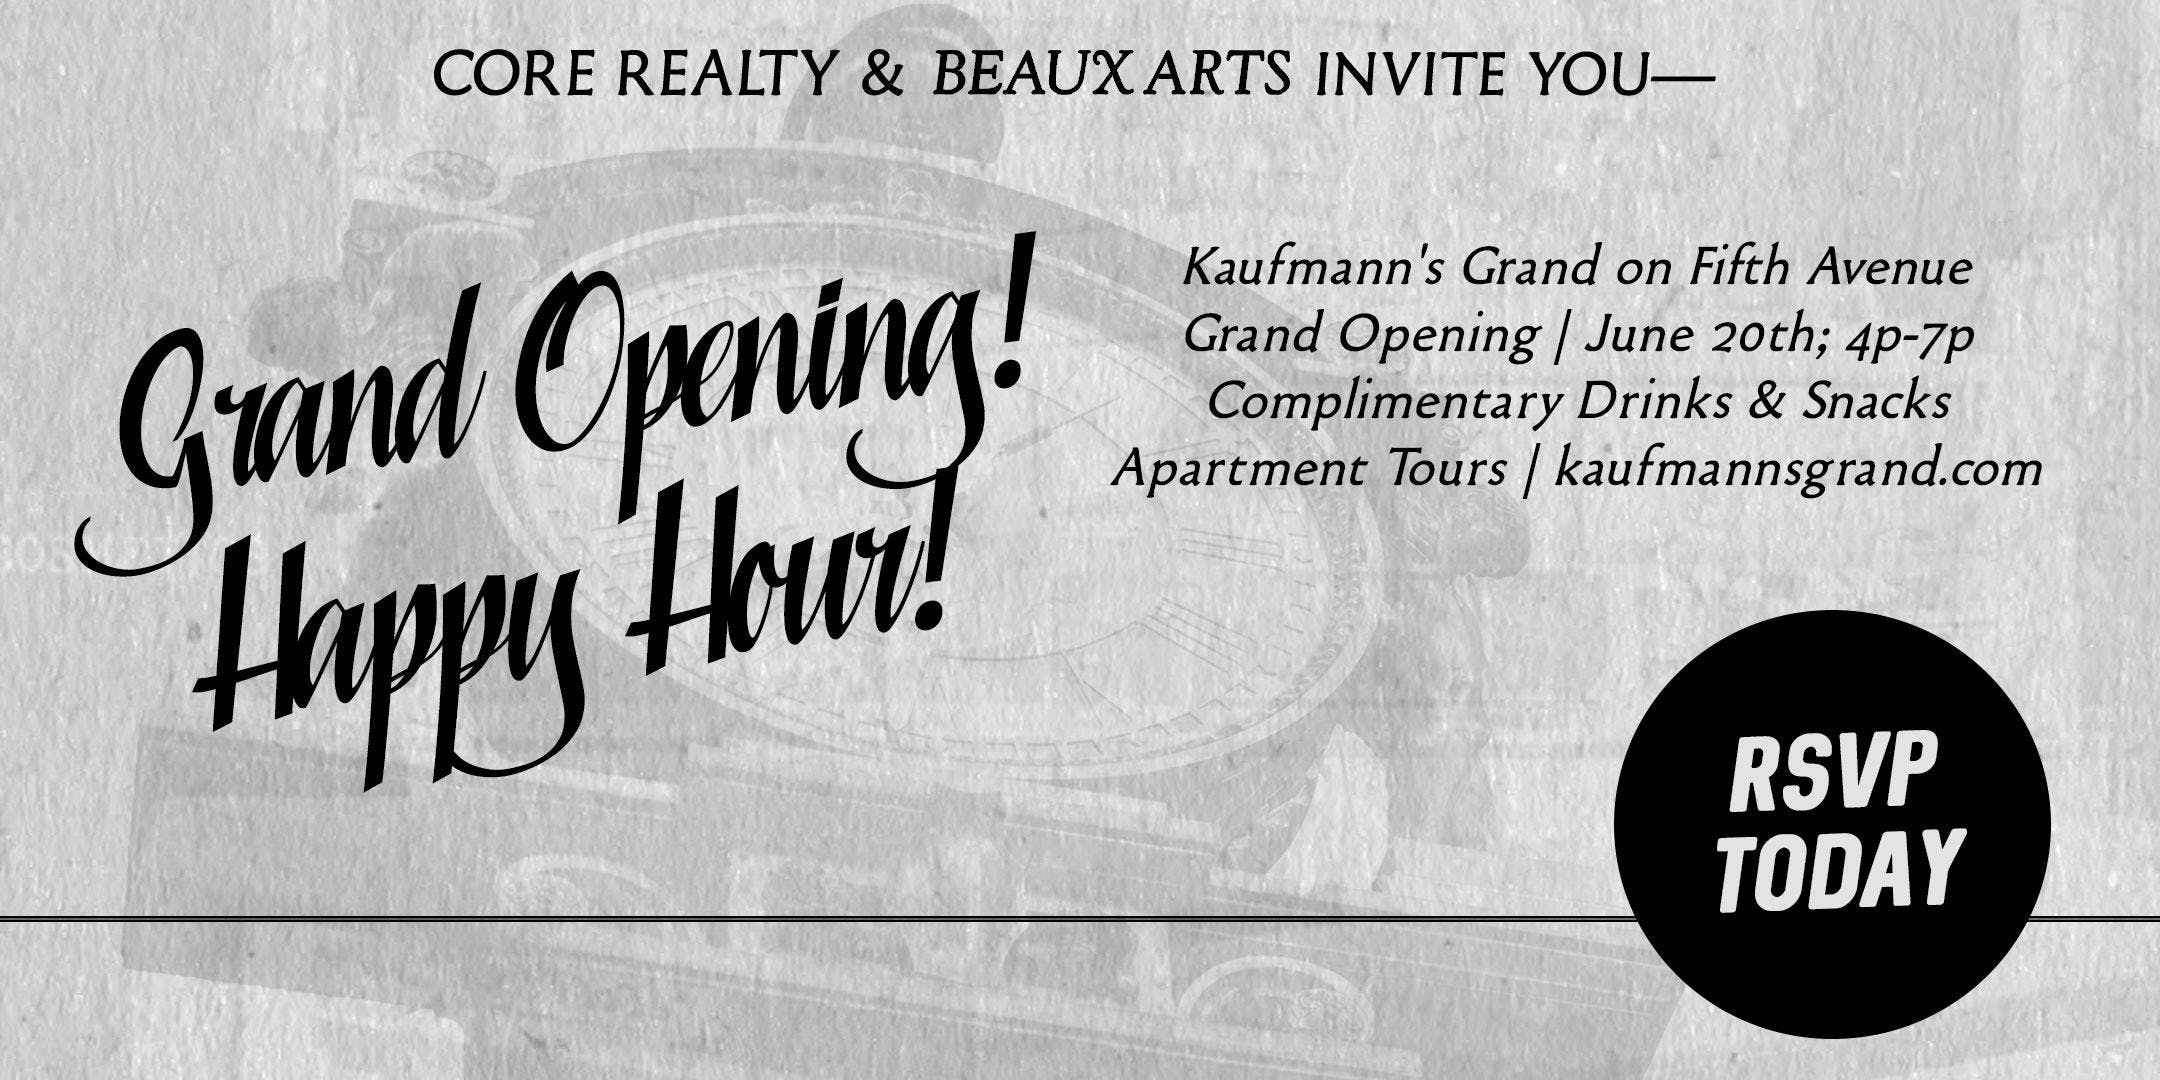 Grand Opening Happy Hour: Kaufmann's Grand on